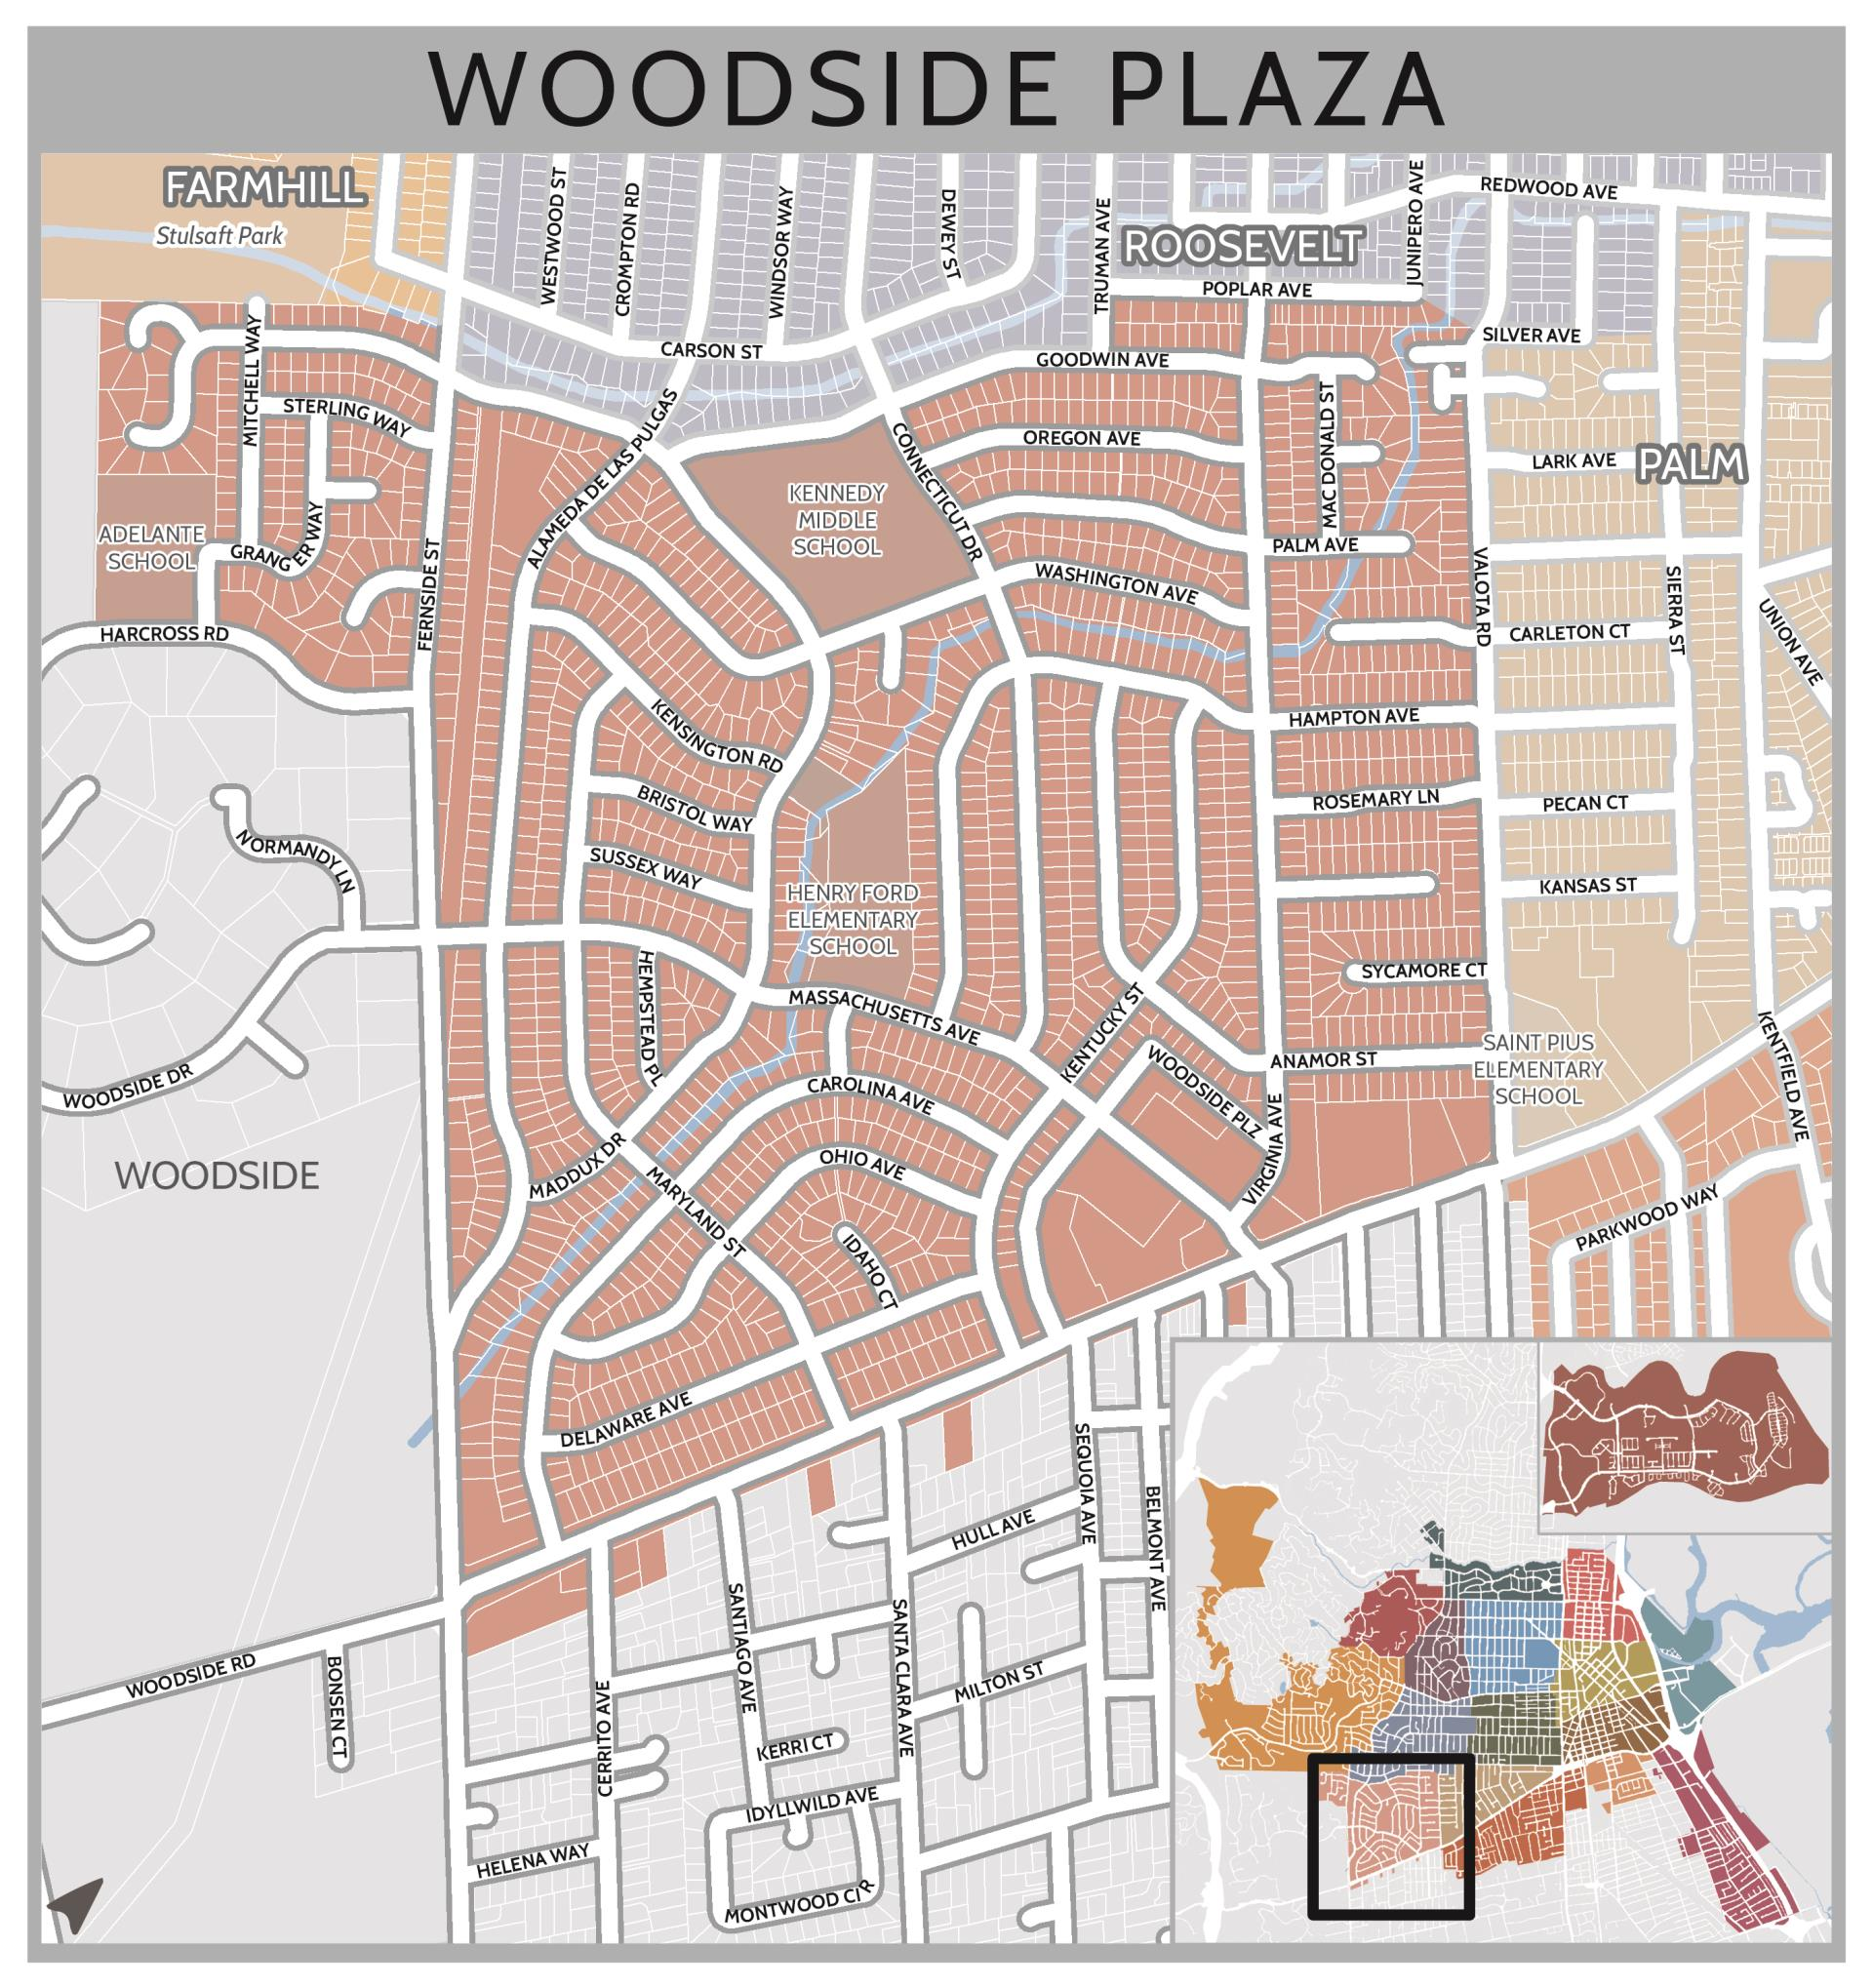 Woodside_Plaza-01